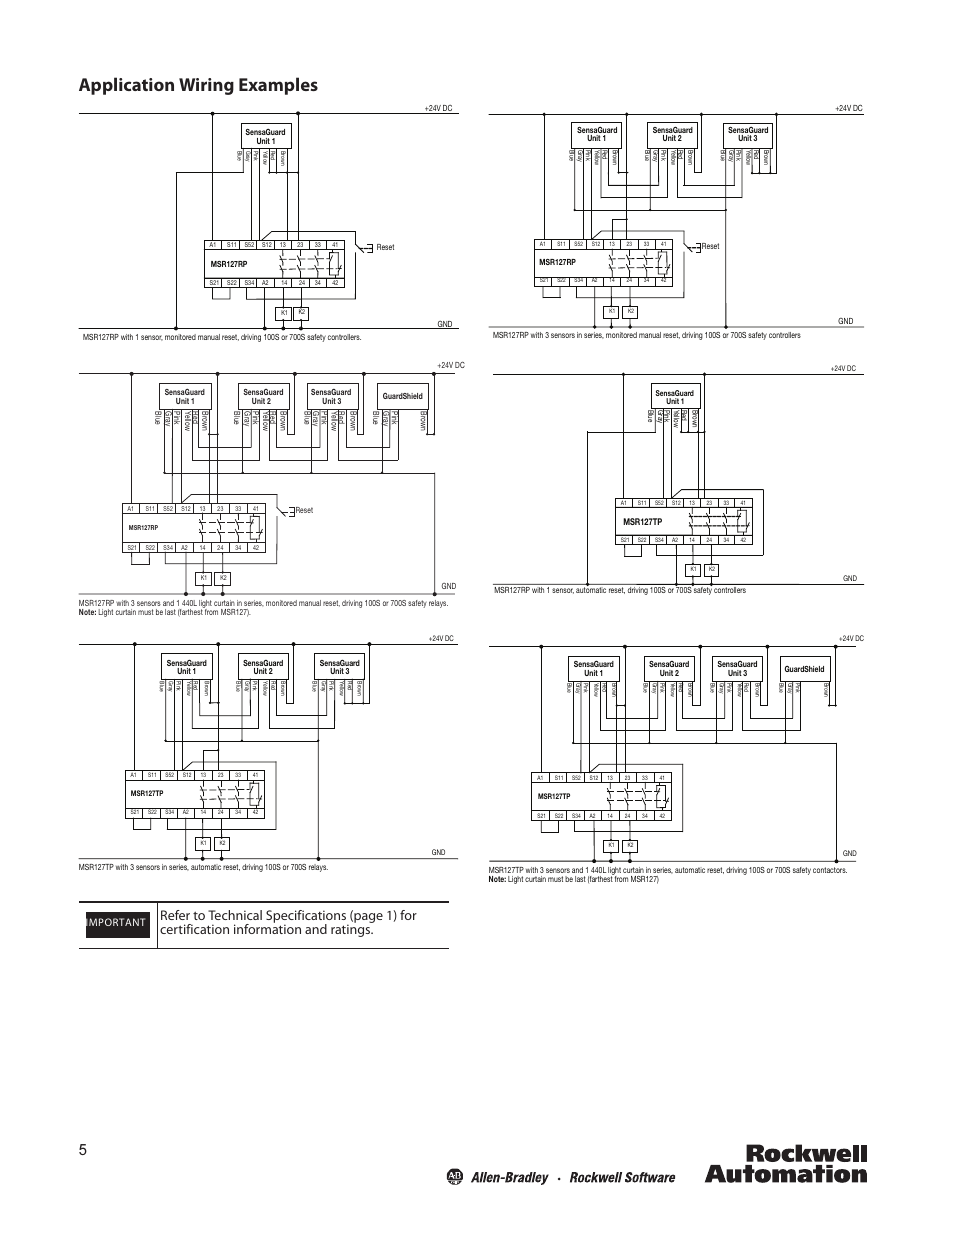 Application Wiring Examples